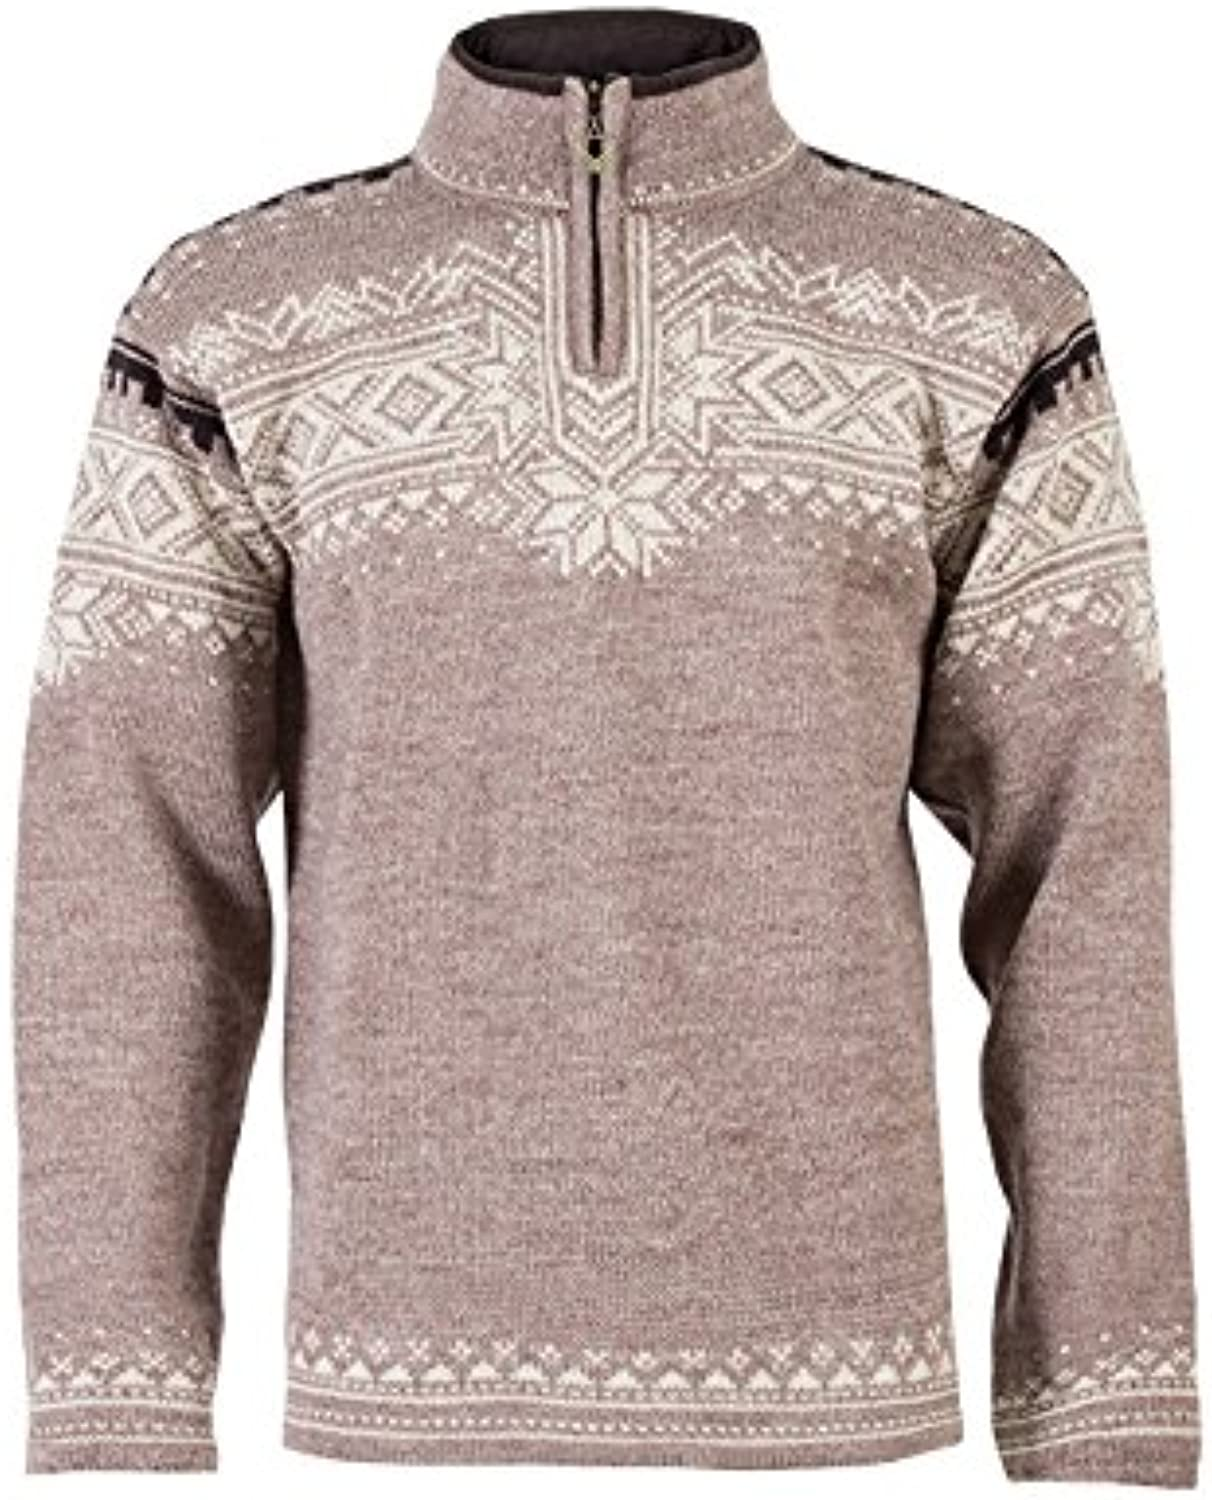 (Small, Beige  Beige  Mountainstone Sand Lava Mel)  Dale of Norway  Anniversary Men's Sweater